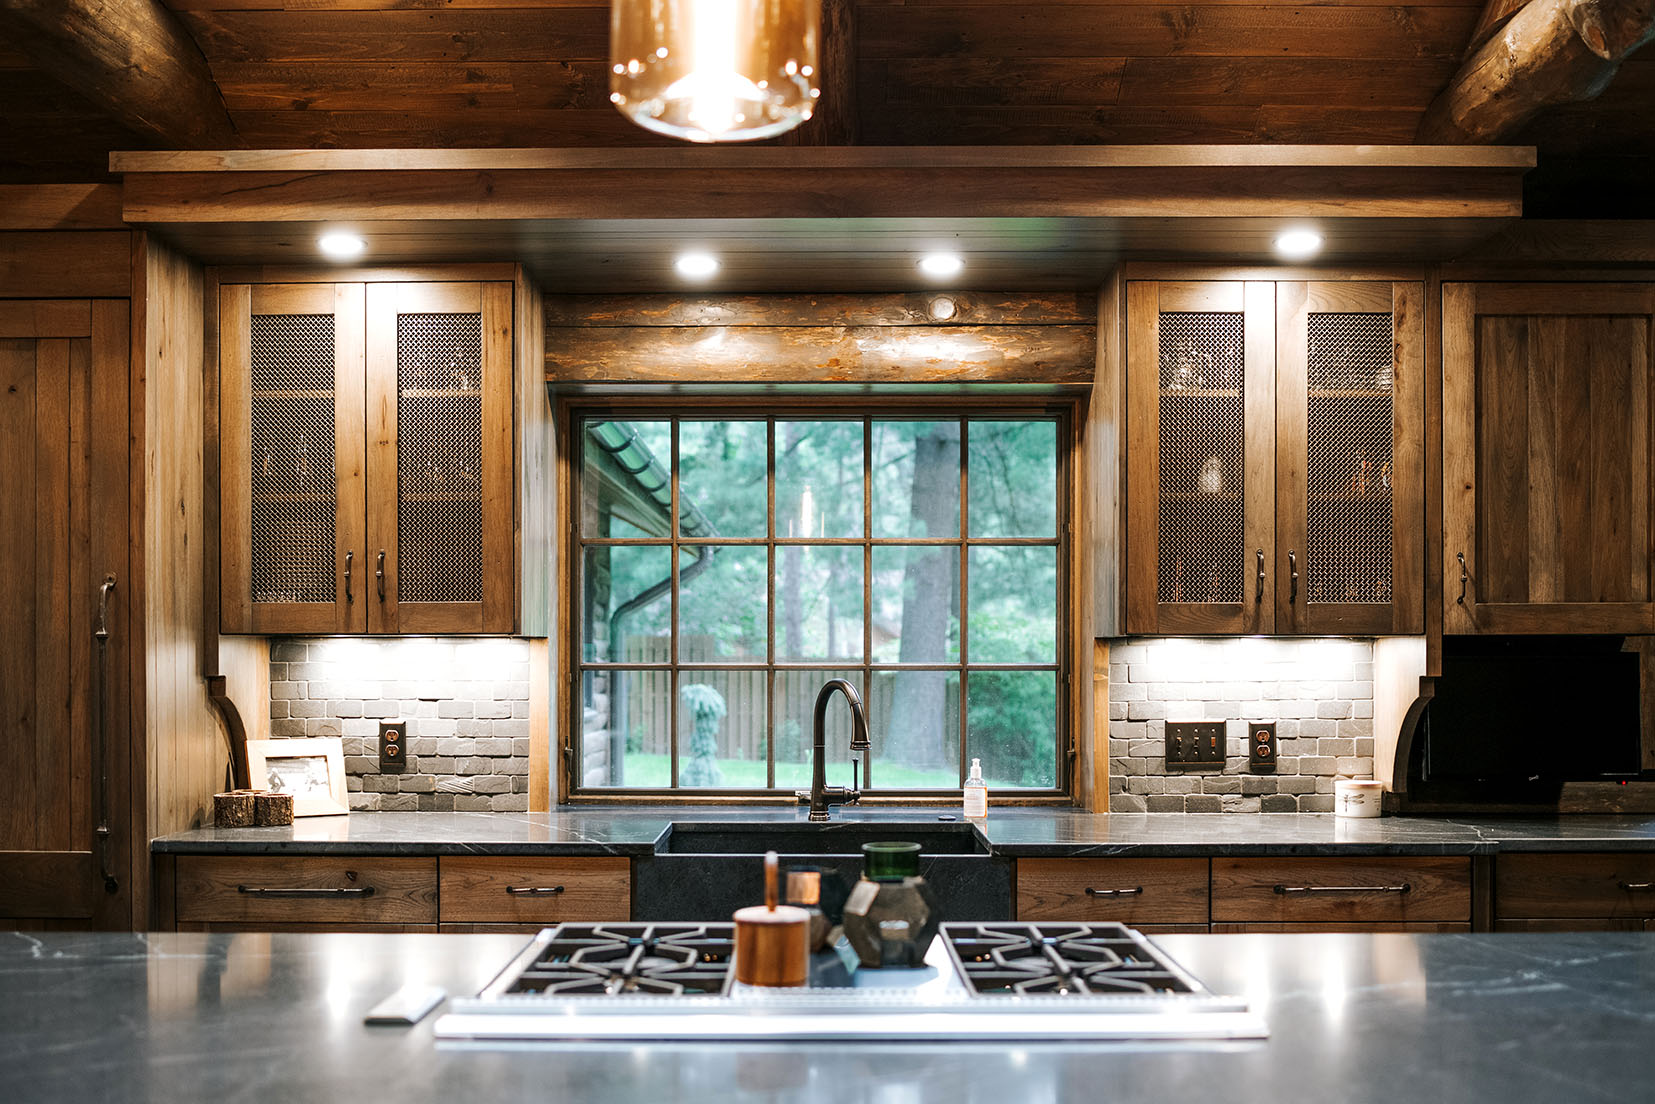 Distressed Rustic Hickory Kitchen Cabinets Alpine Cabinetry Alpine Cabinetry